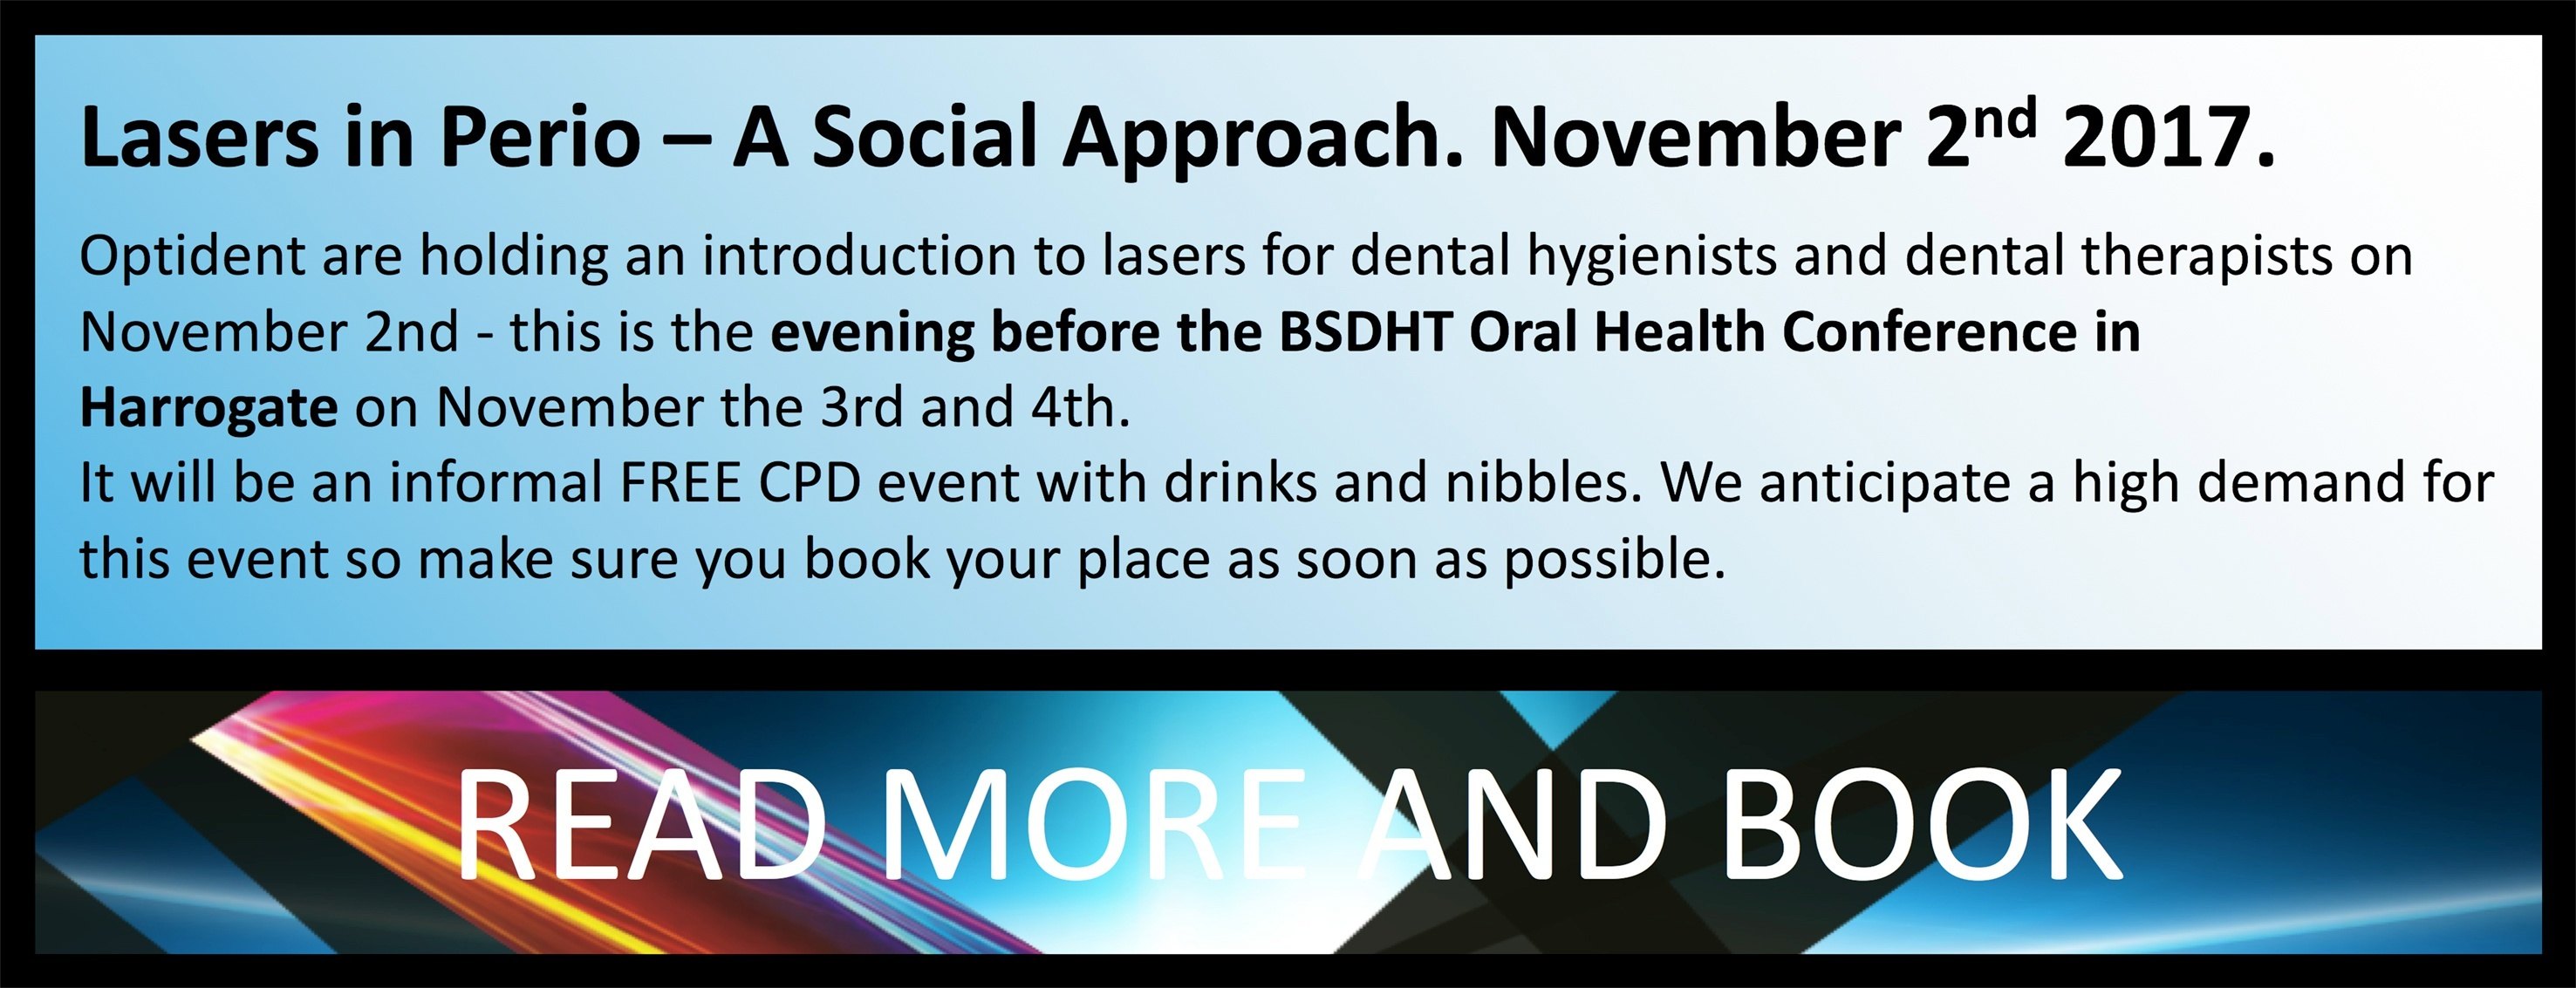 Lasers in Perio - A Social Approach. Lasers for dental hygienists and dental therapists